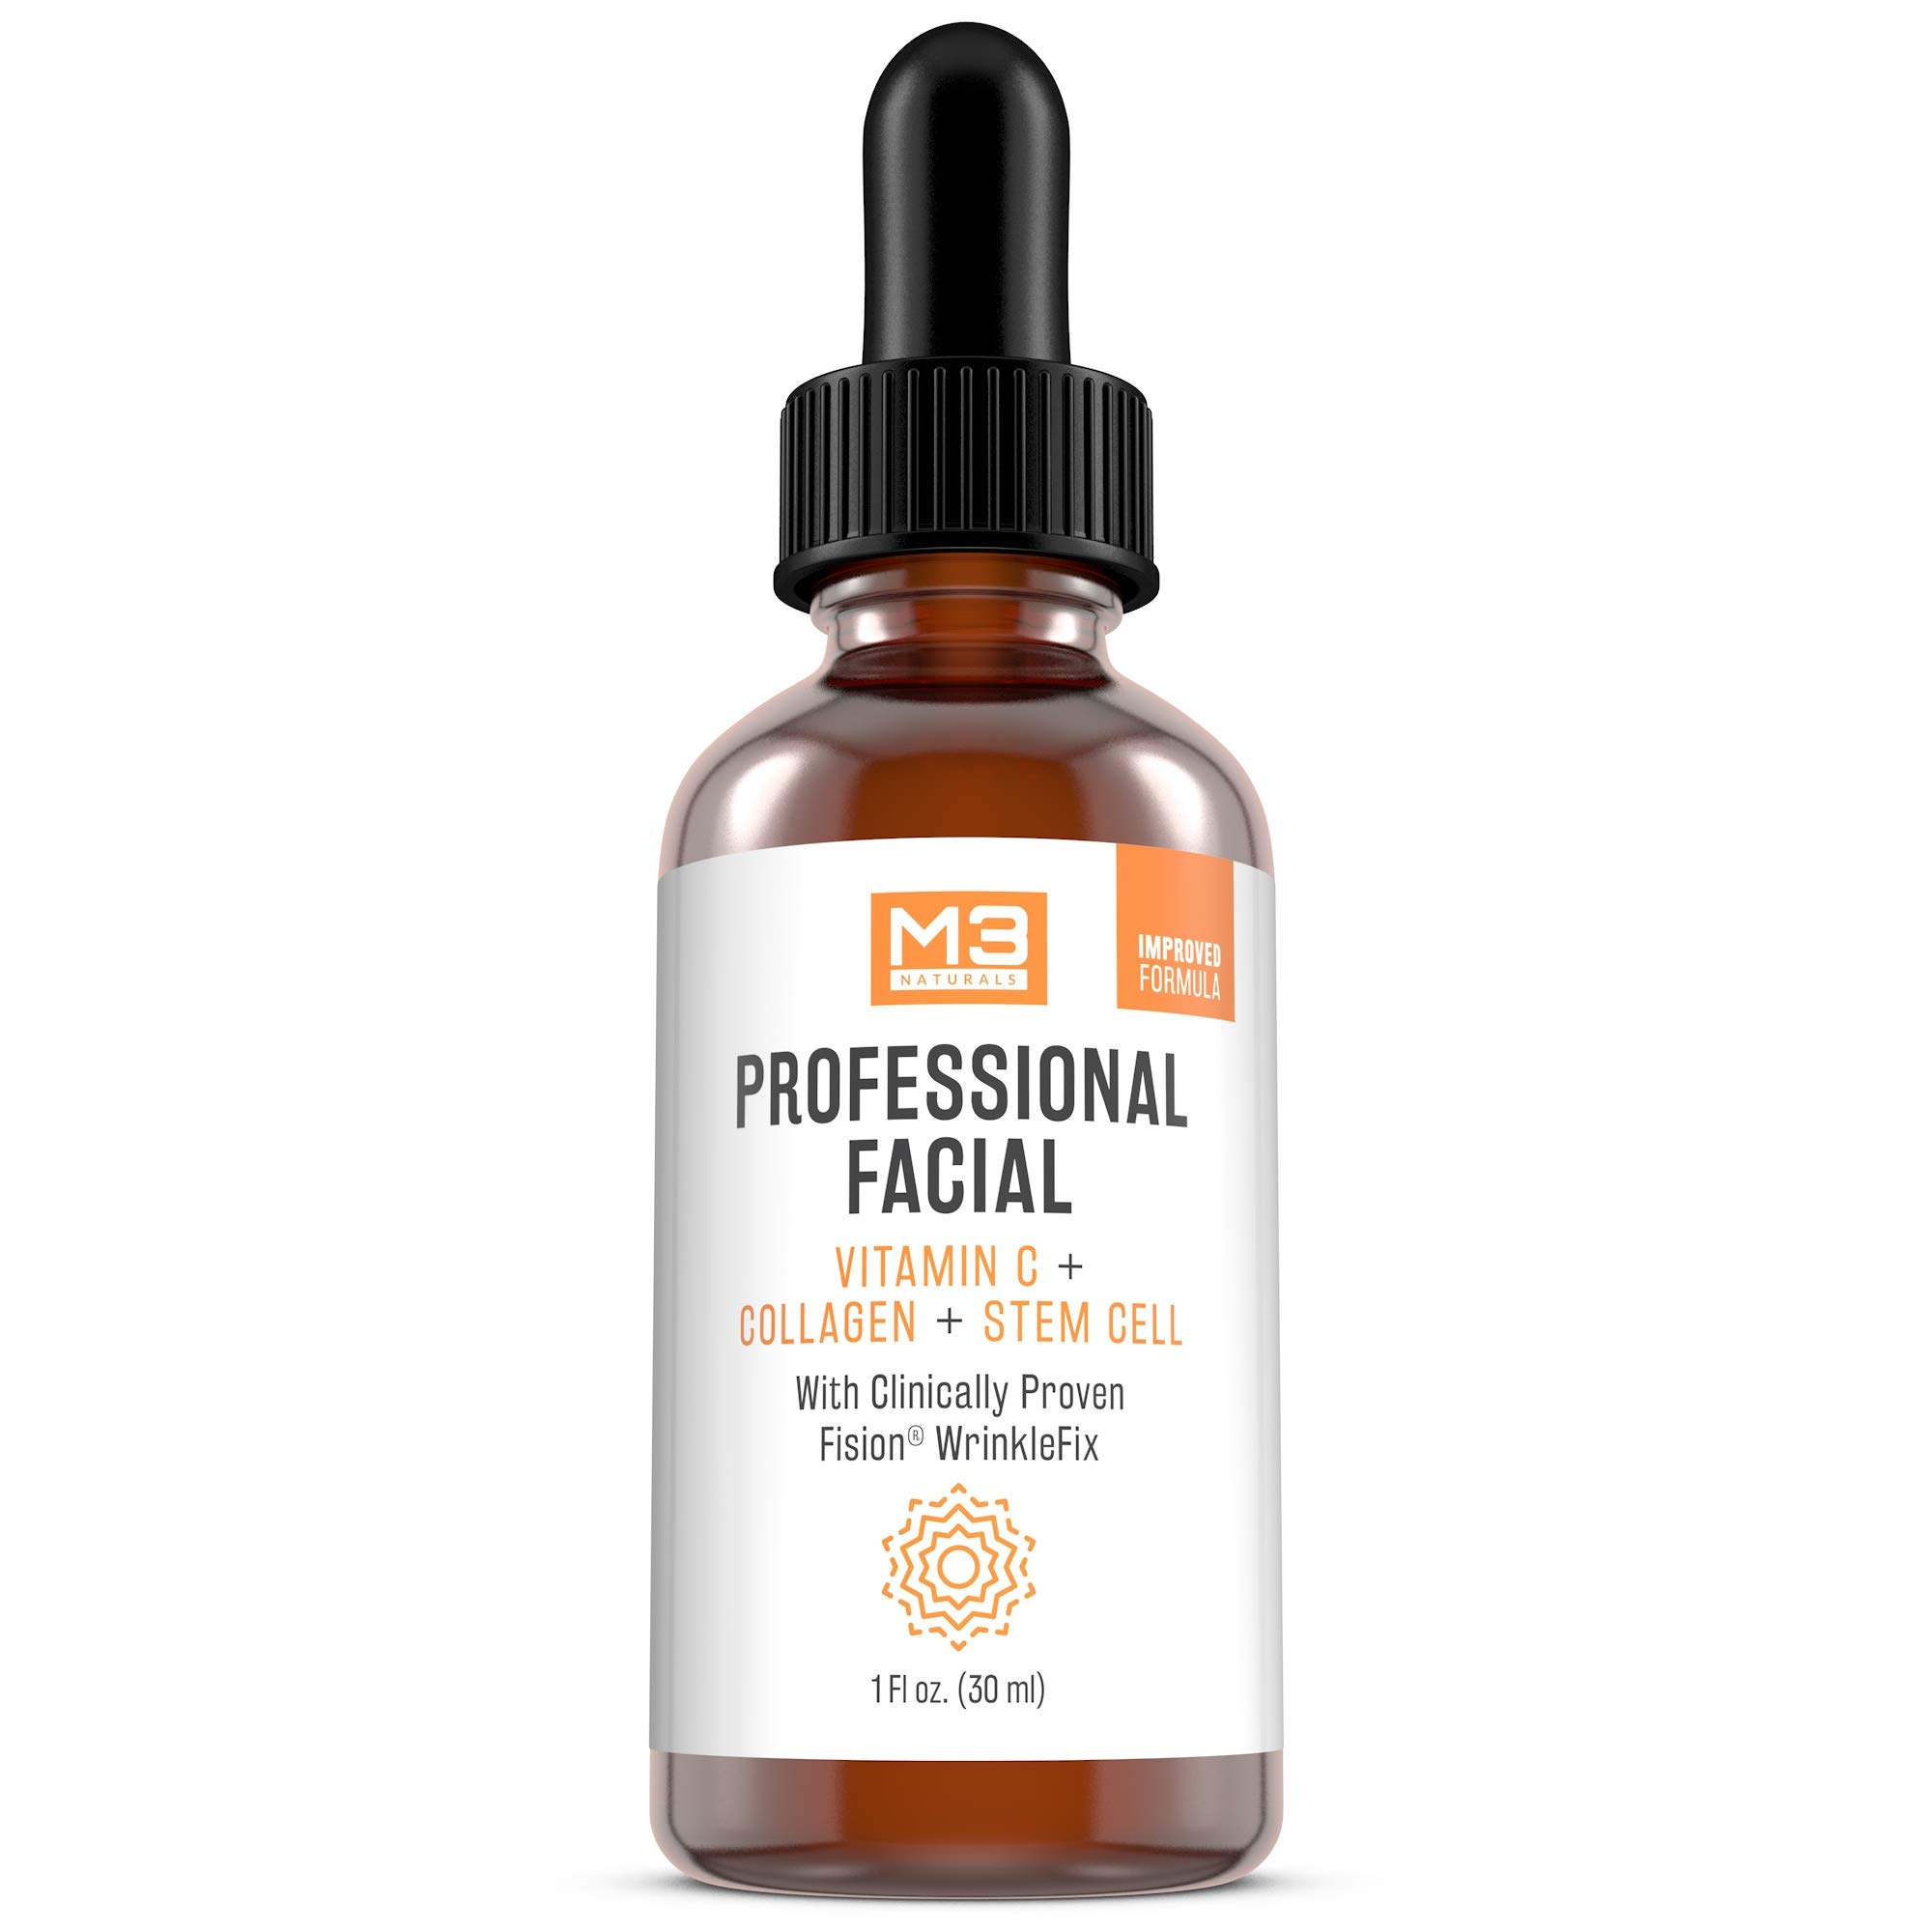 M3 Naturals Professional Facial Vitamin C Infused with Collagen Stem Cell and Patented Fision Wrinkle Fix Face Eye Oil Topical Facial Serum Natural Skin Care Acne Anti Aging Dark Spot Remover Cream by M3 Naturals